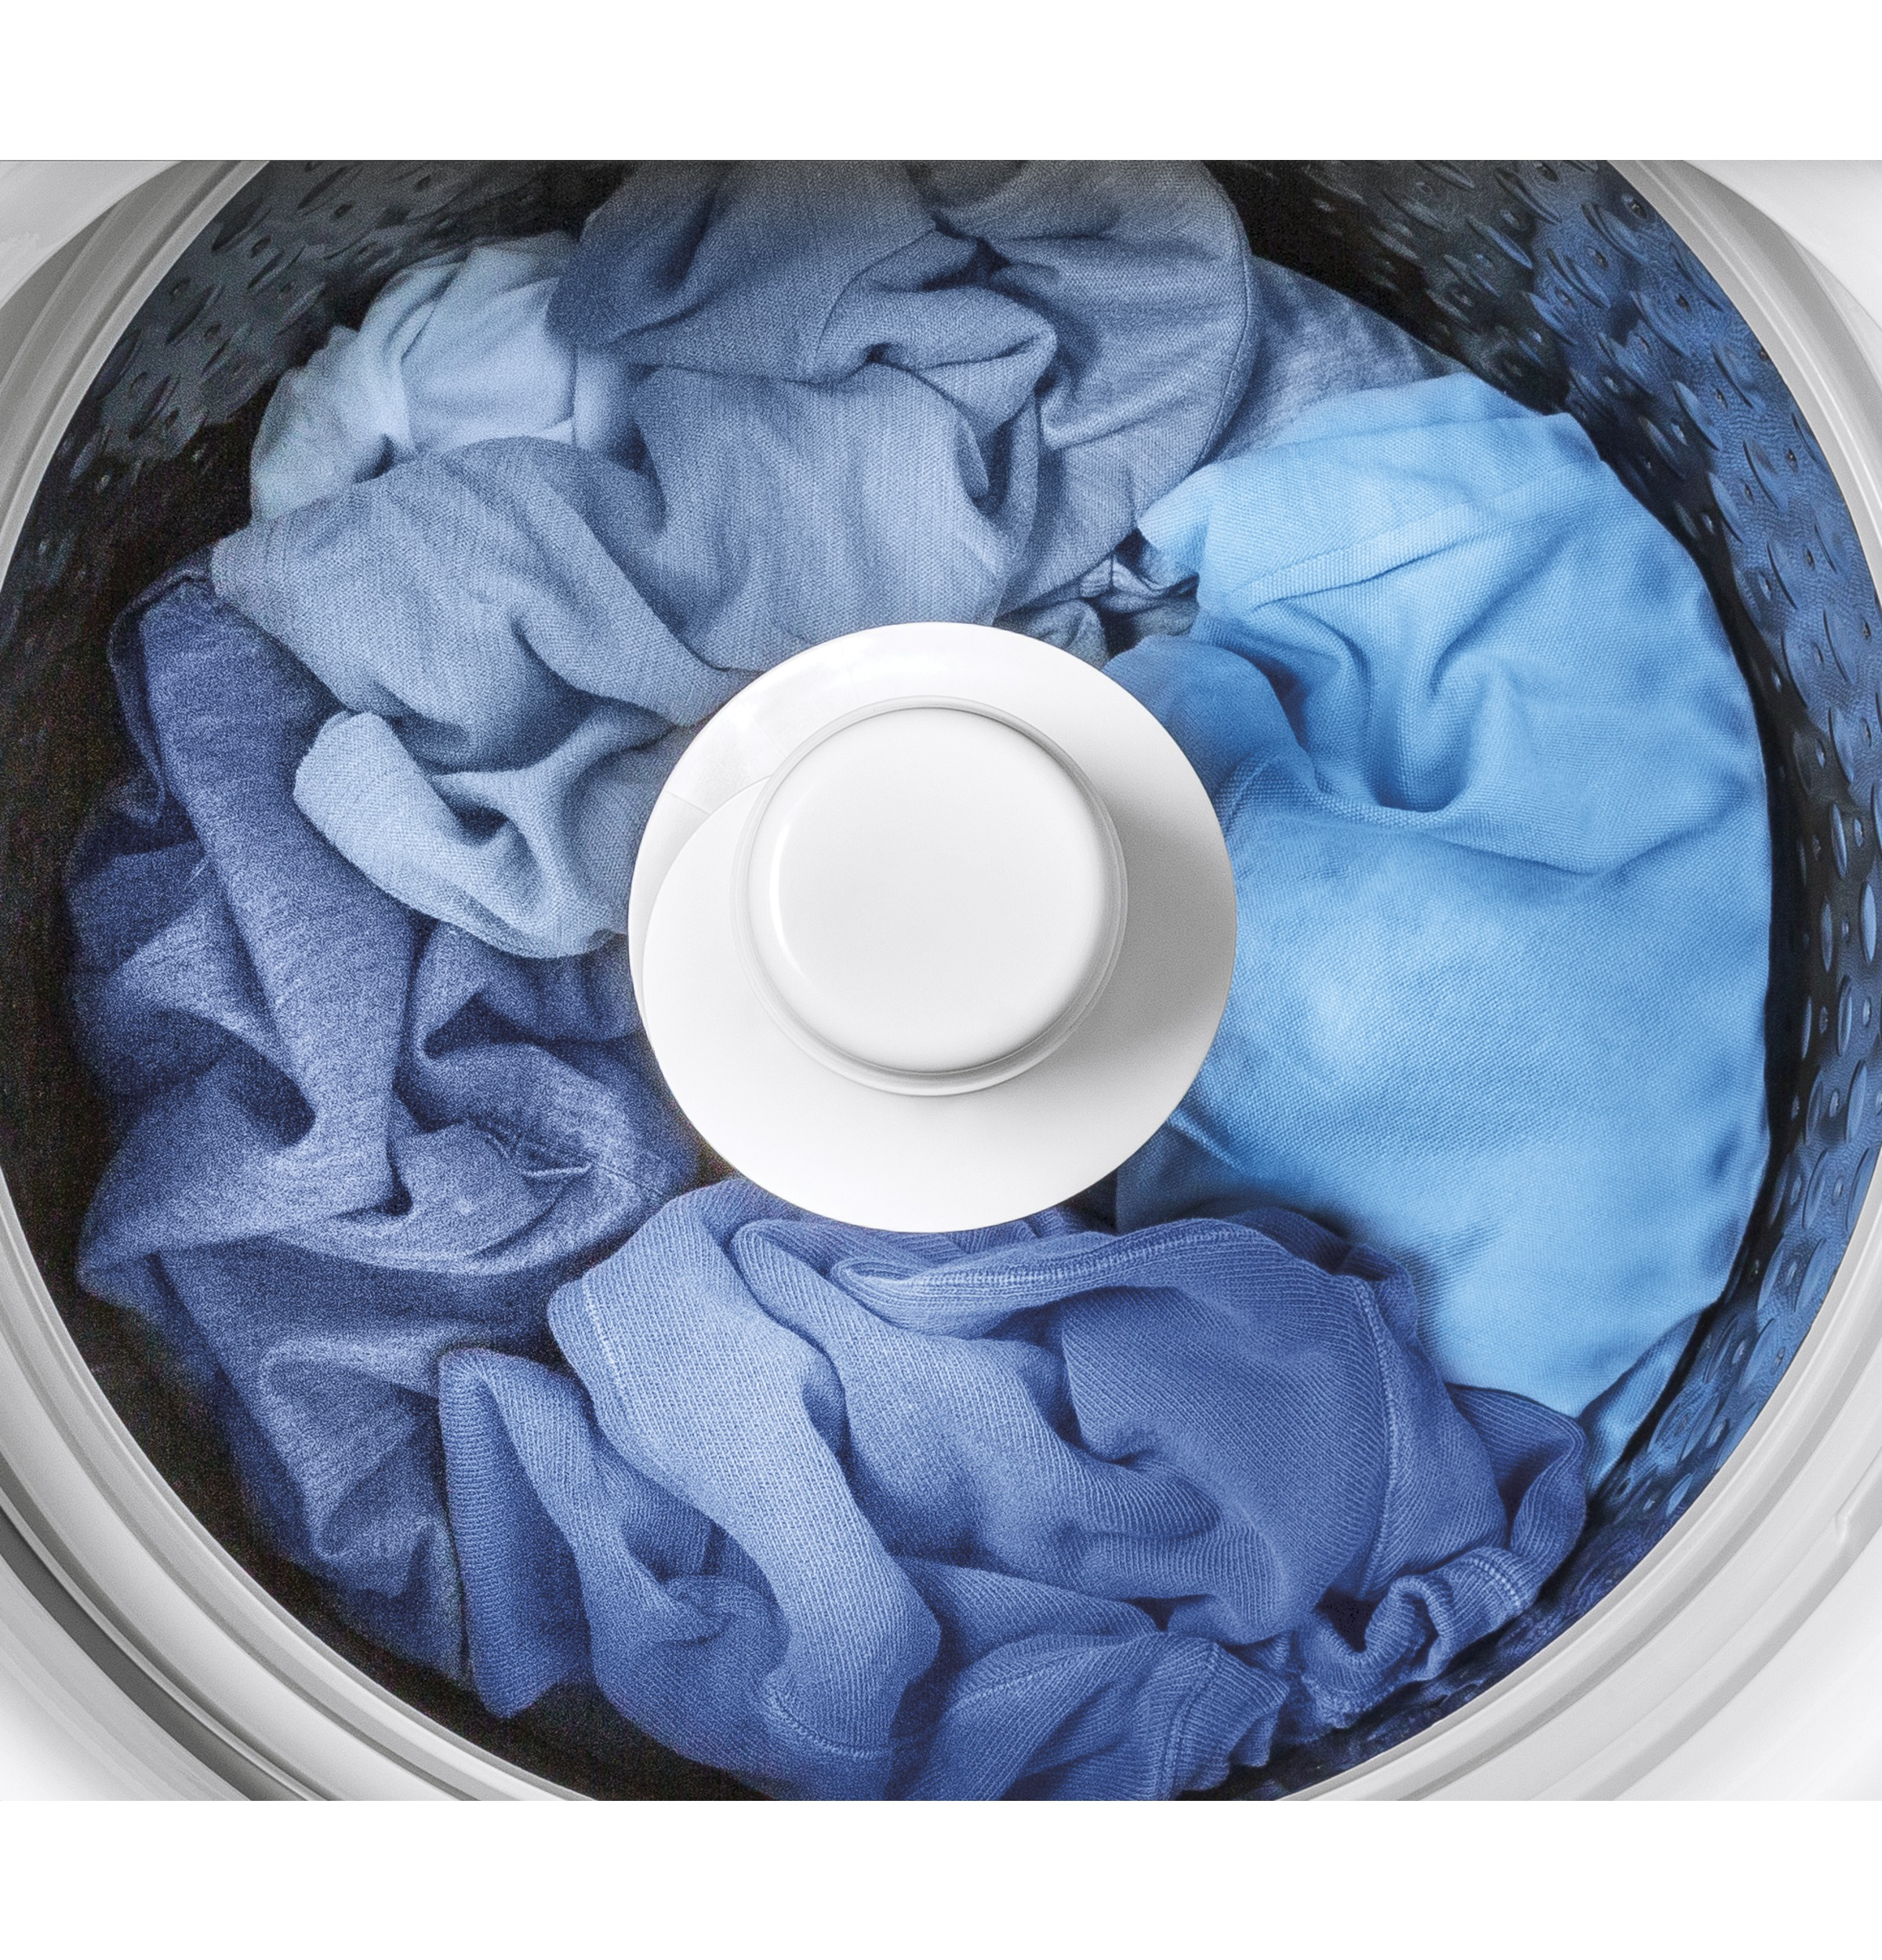 Model: GTW725BPNDG   GE GE® 4.6  cu. ft. Capacity Washer with Sanitize w/Oxi and FlexDispense®